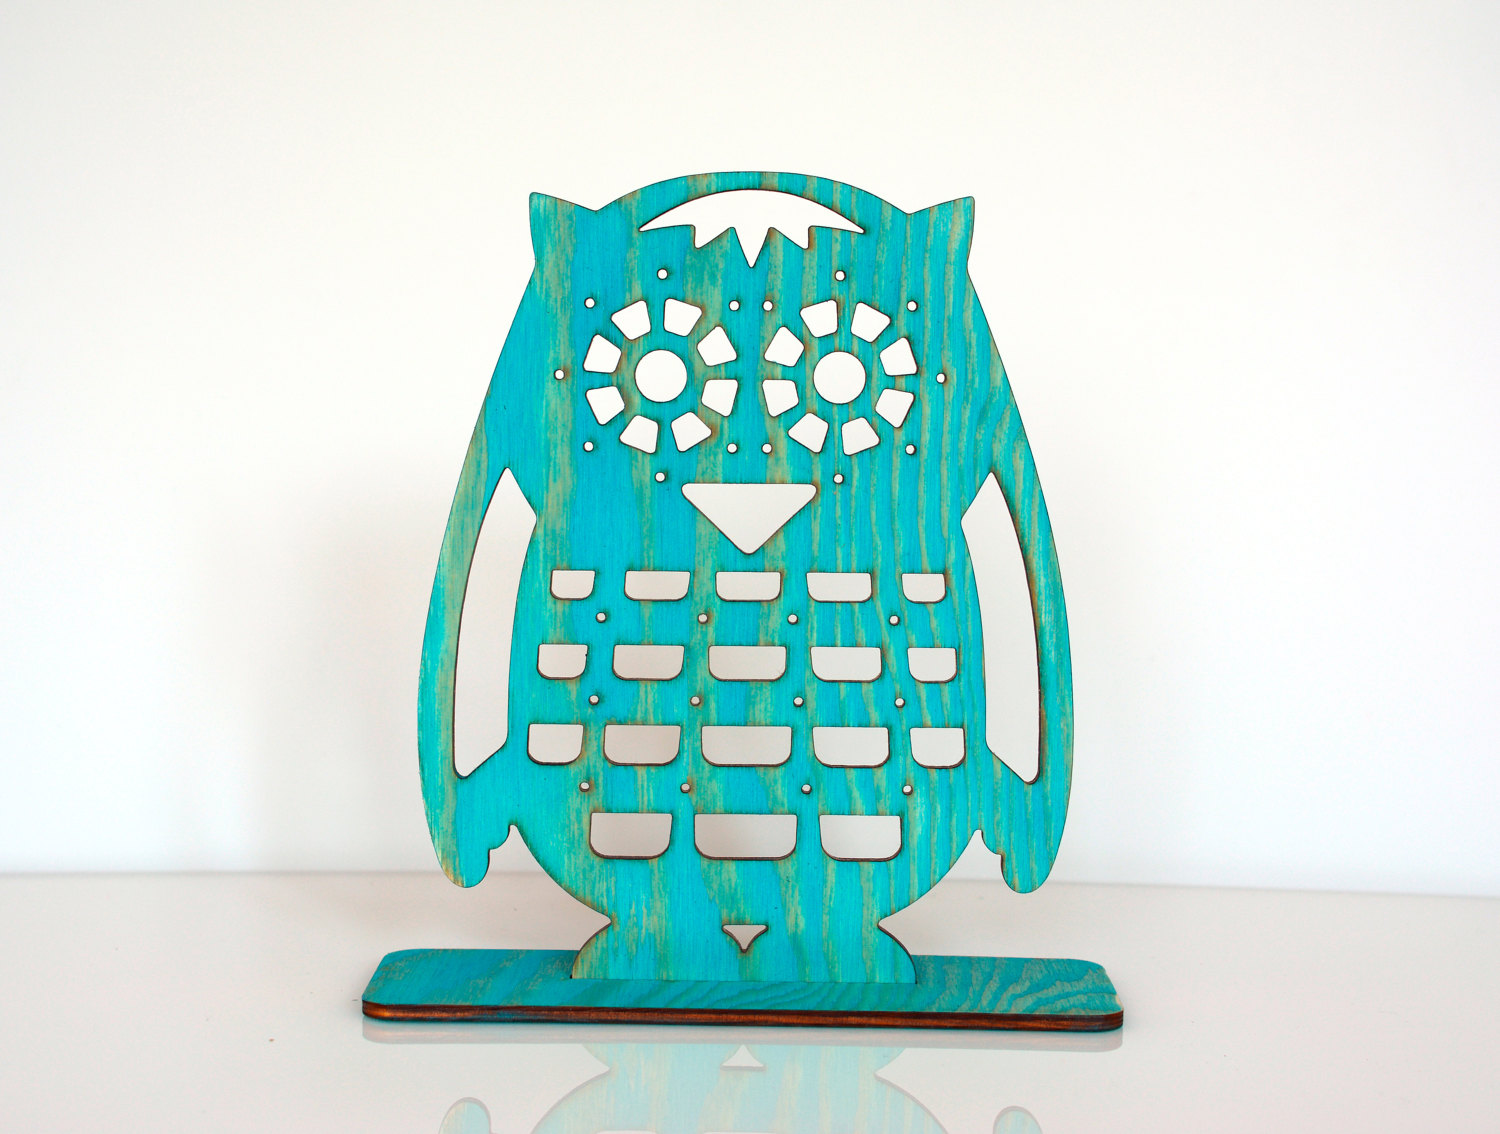 Specially designed as a jewelry earring holder, in a creative way, with a shape of an owl, made of wood and painted in turquoise.